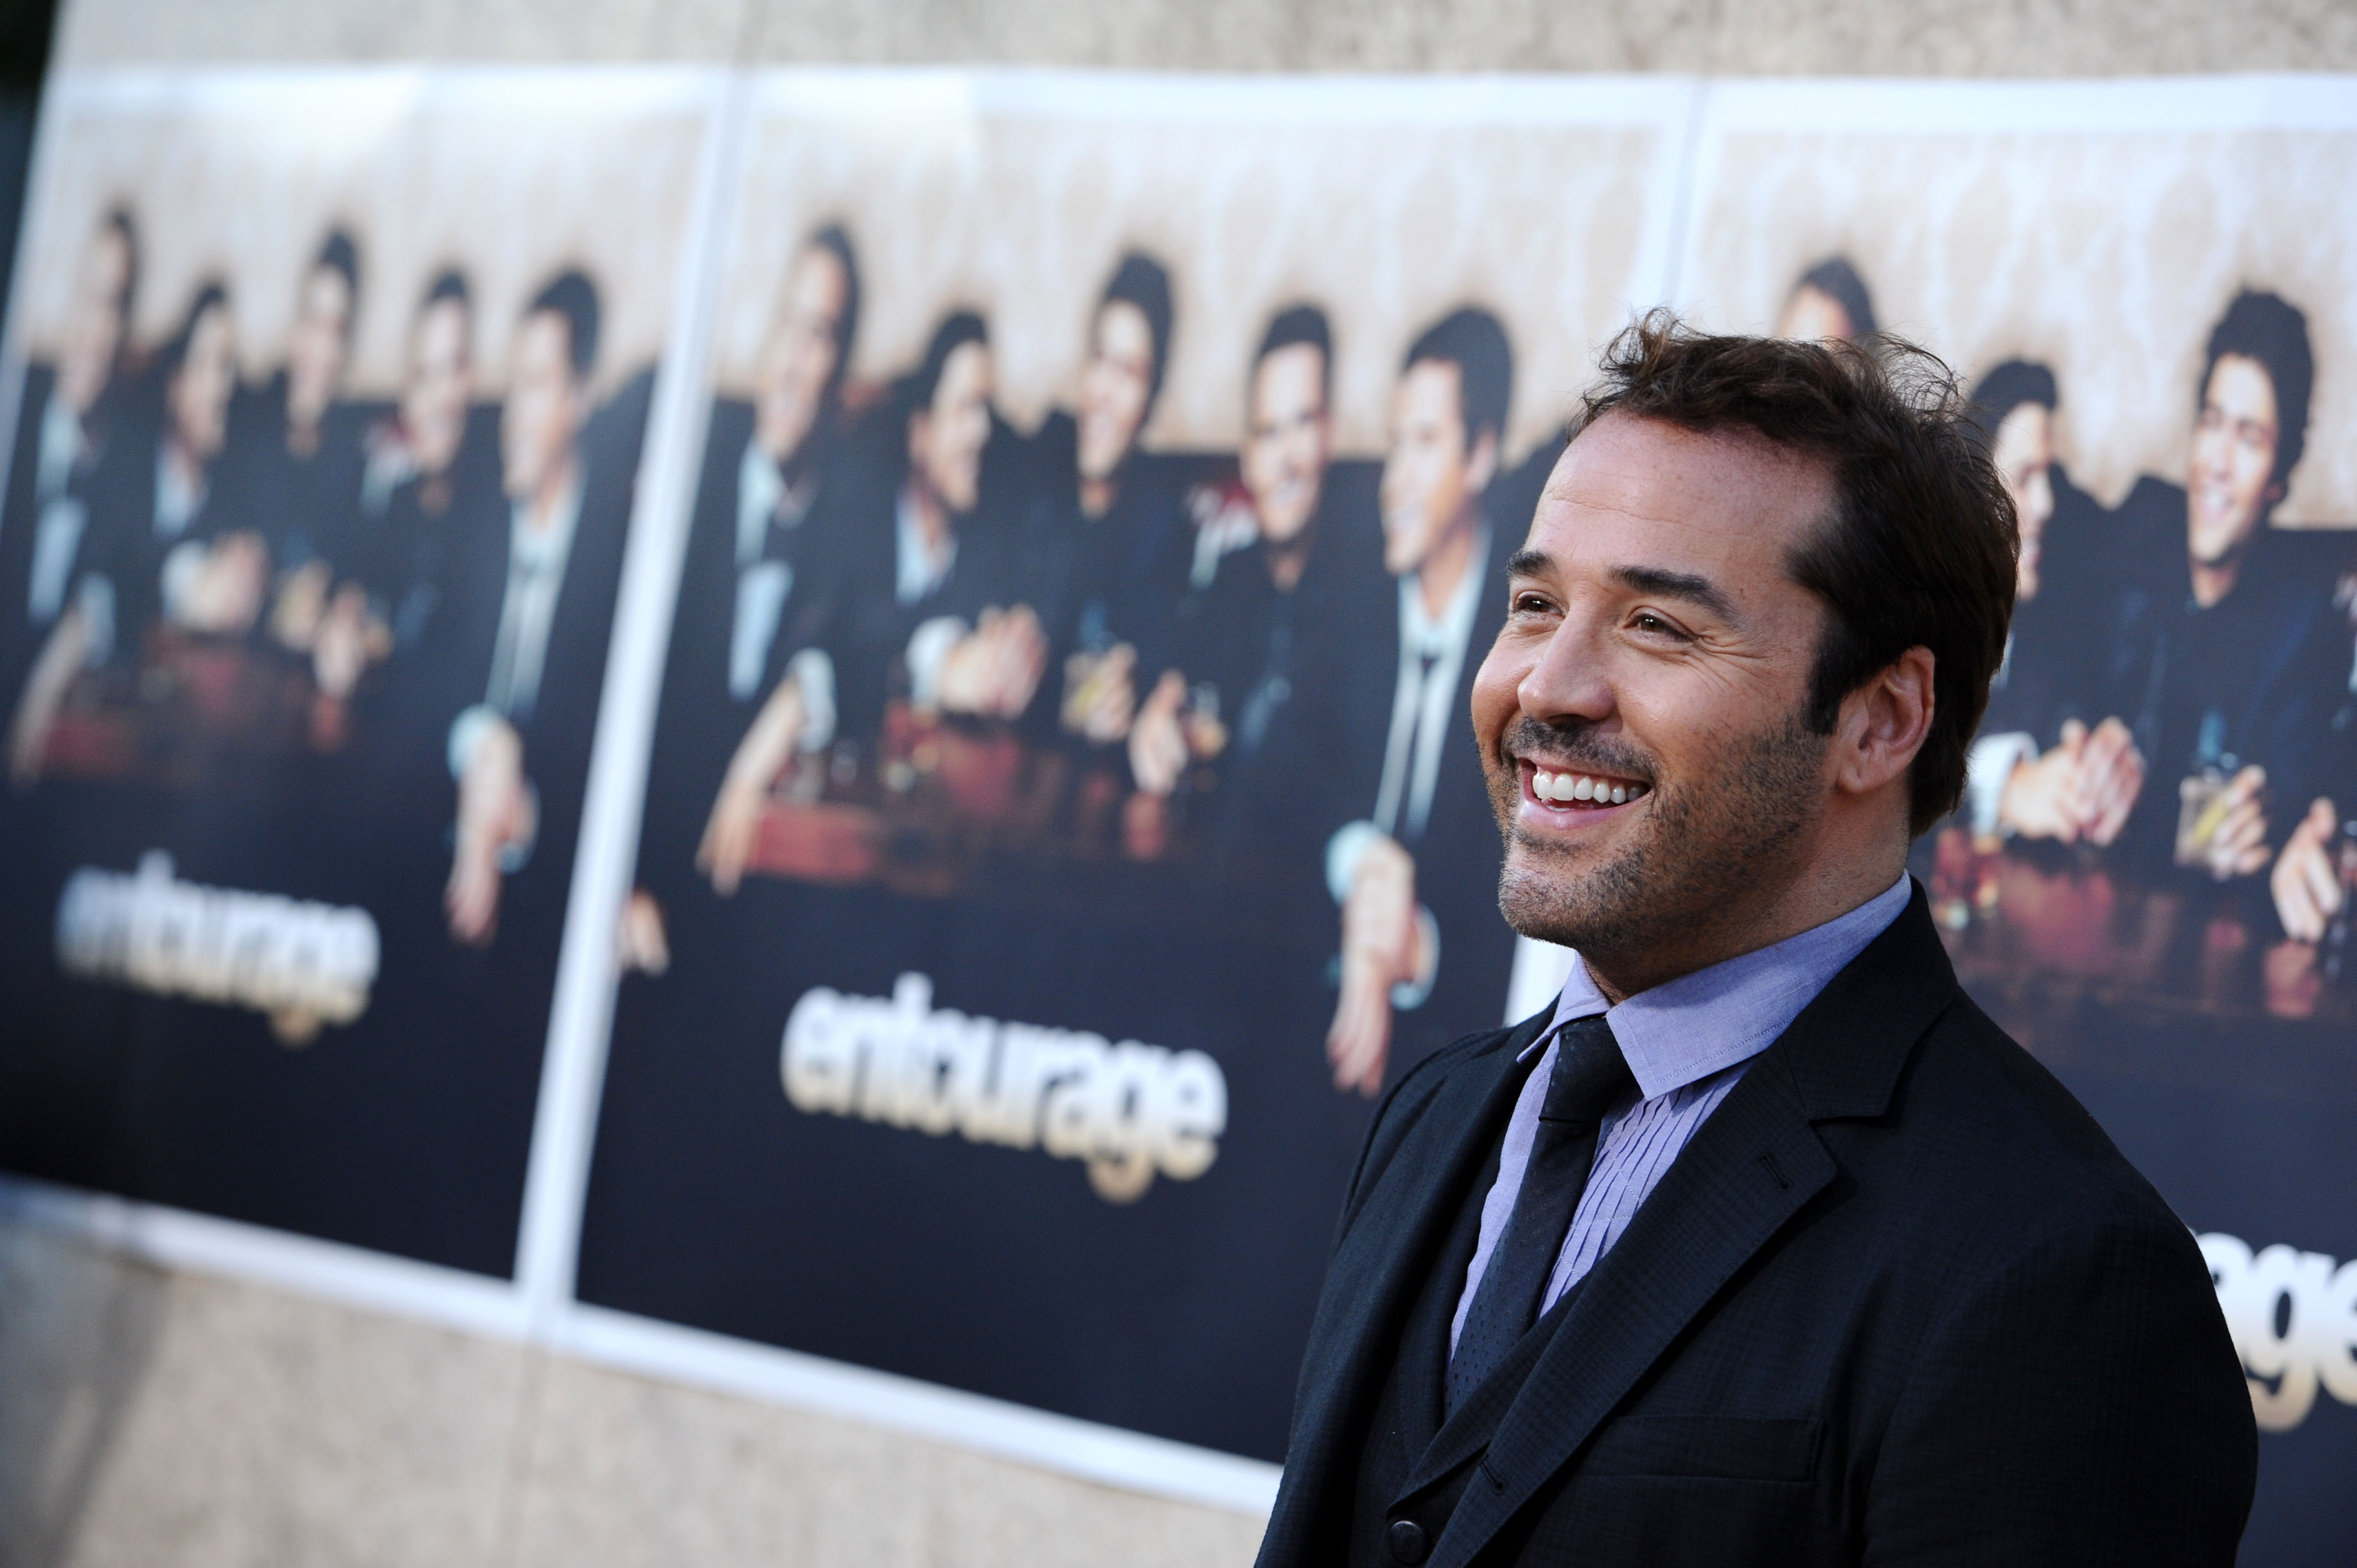 Jeremy Piven attends HBO's 'Entourage' season 6 premiere held at the Paramount Pictures Studios. Los Angeles, July 9, 2009. P